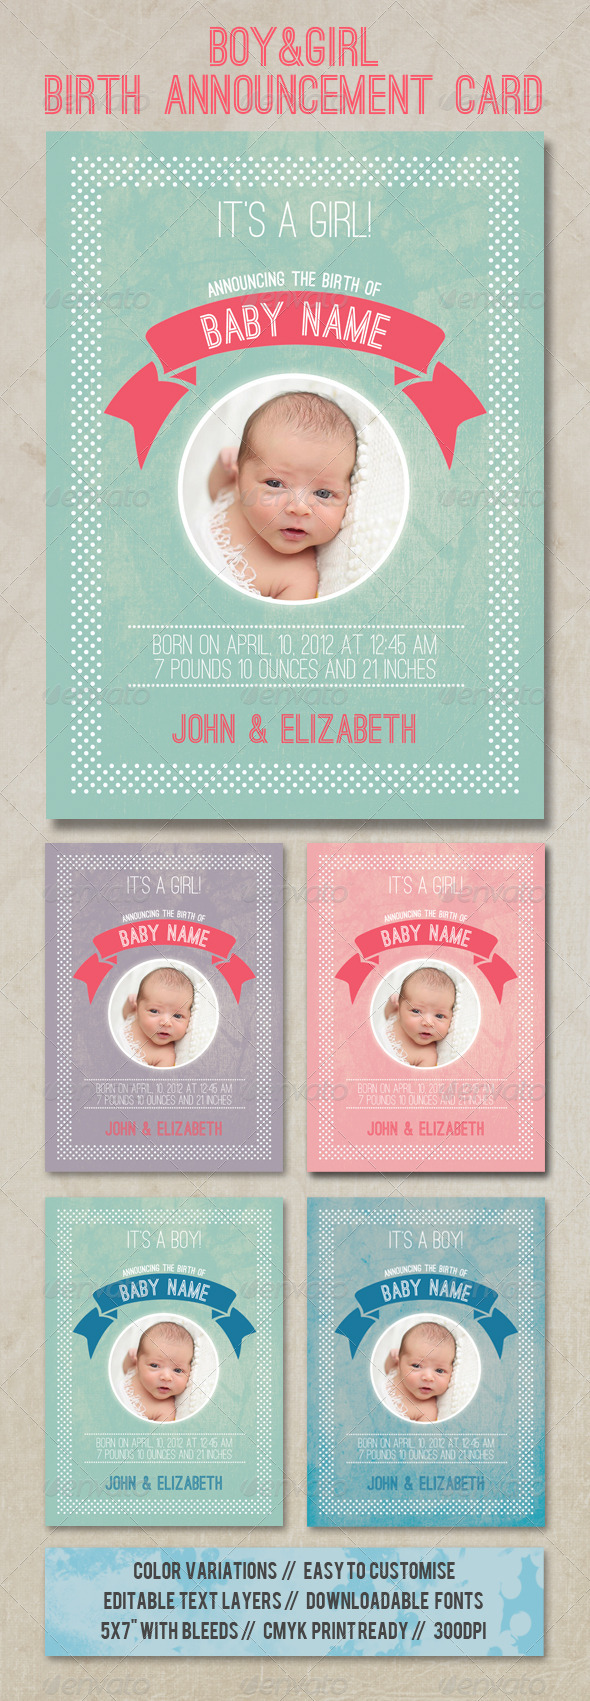 Birth Announcement Card - Family Cards & Invites